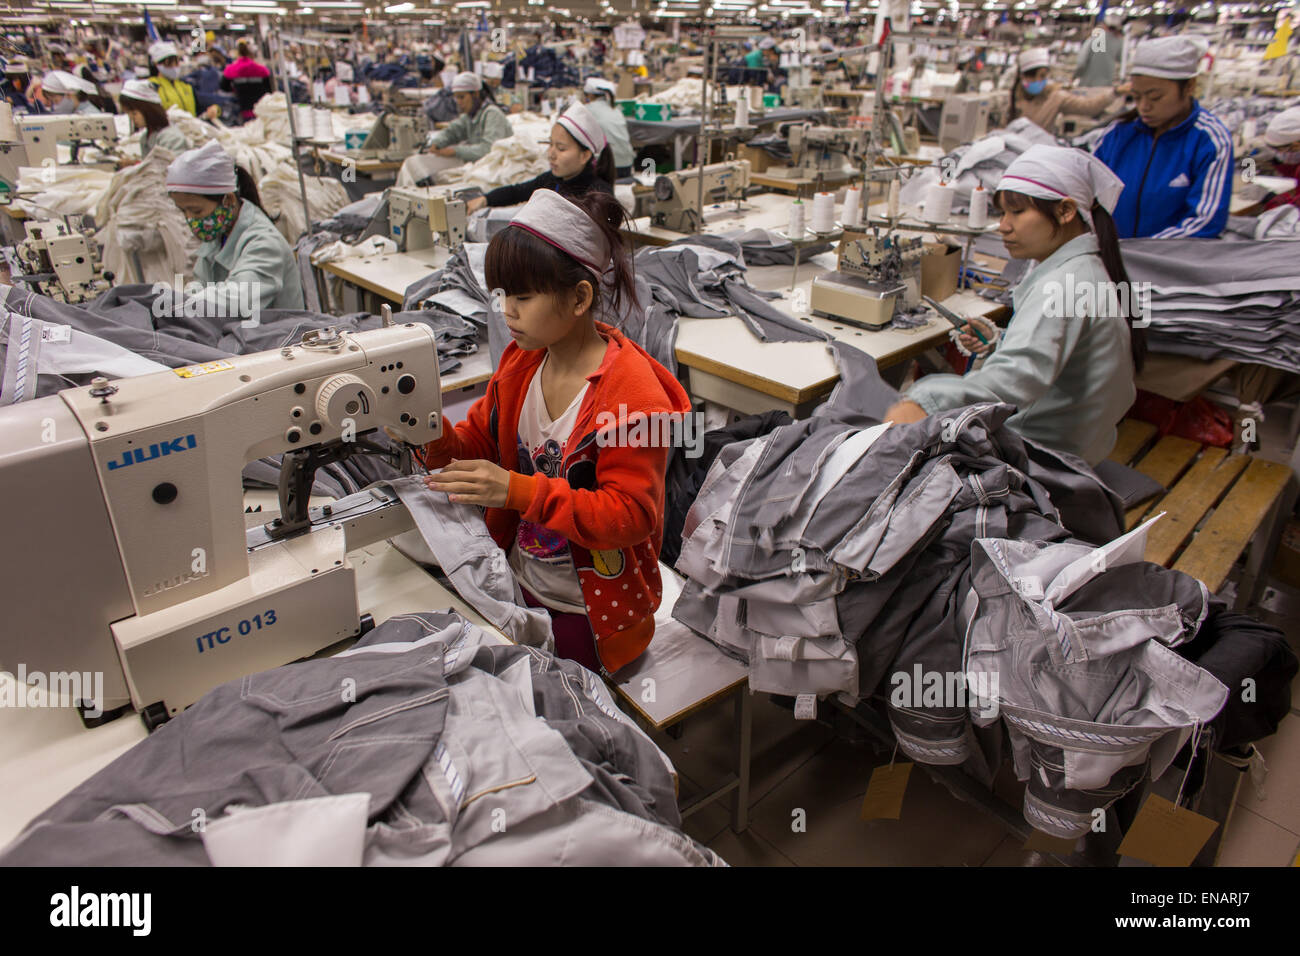 working conditions in a clothing factory in Vietnam - Stock Image